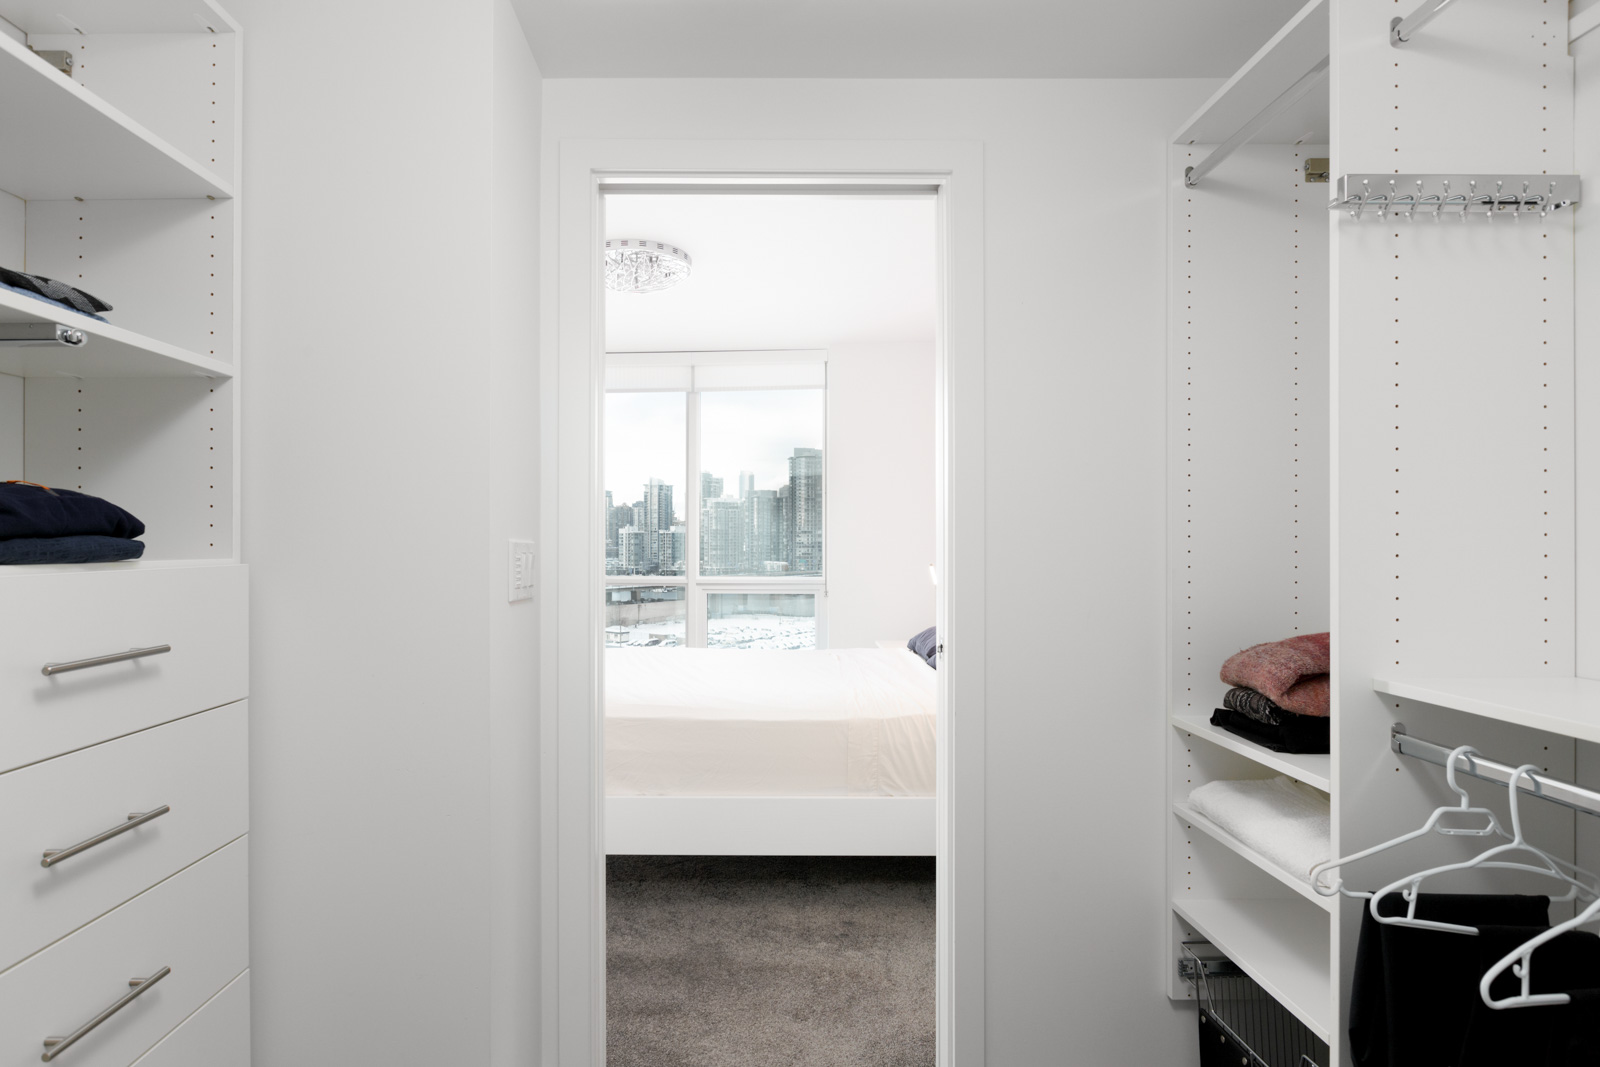 view fro walk in closet of bedroom with white walls and dark hardwood floors in condo building